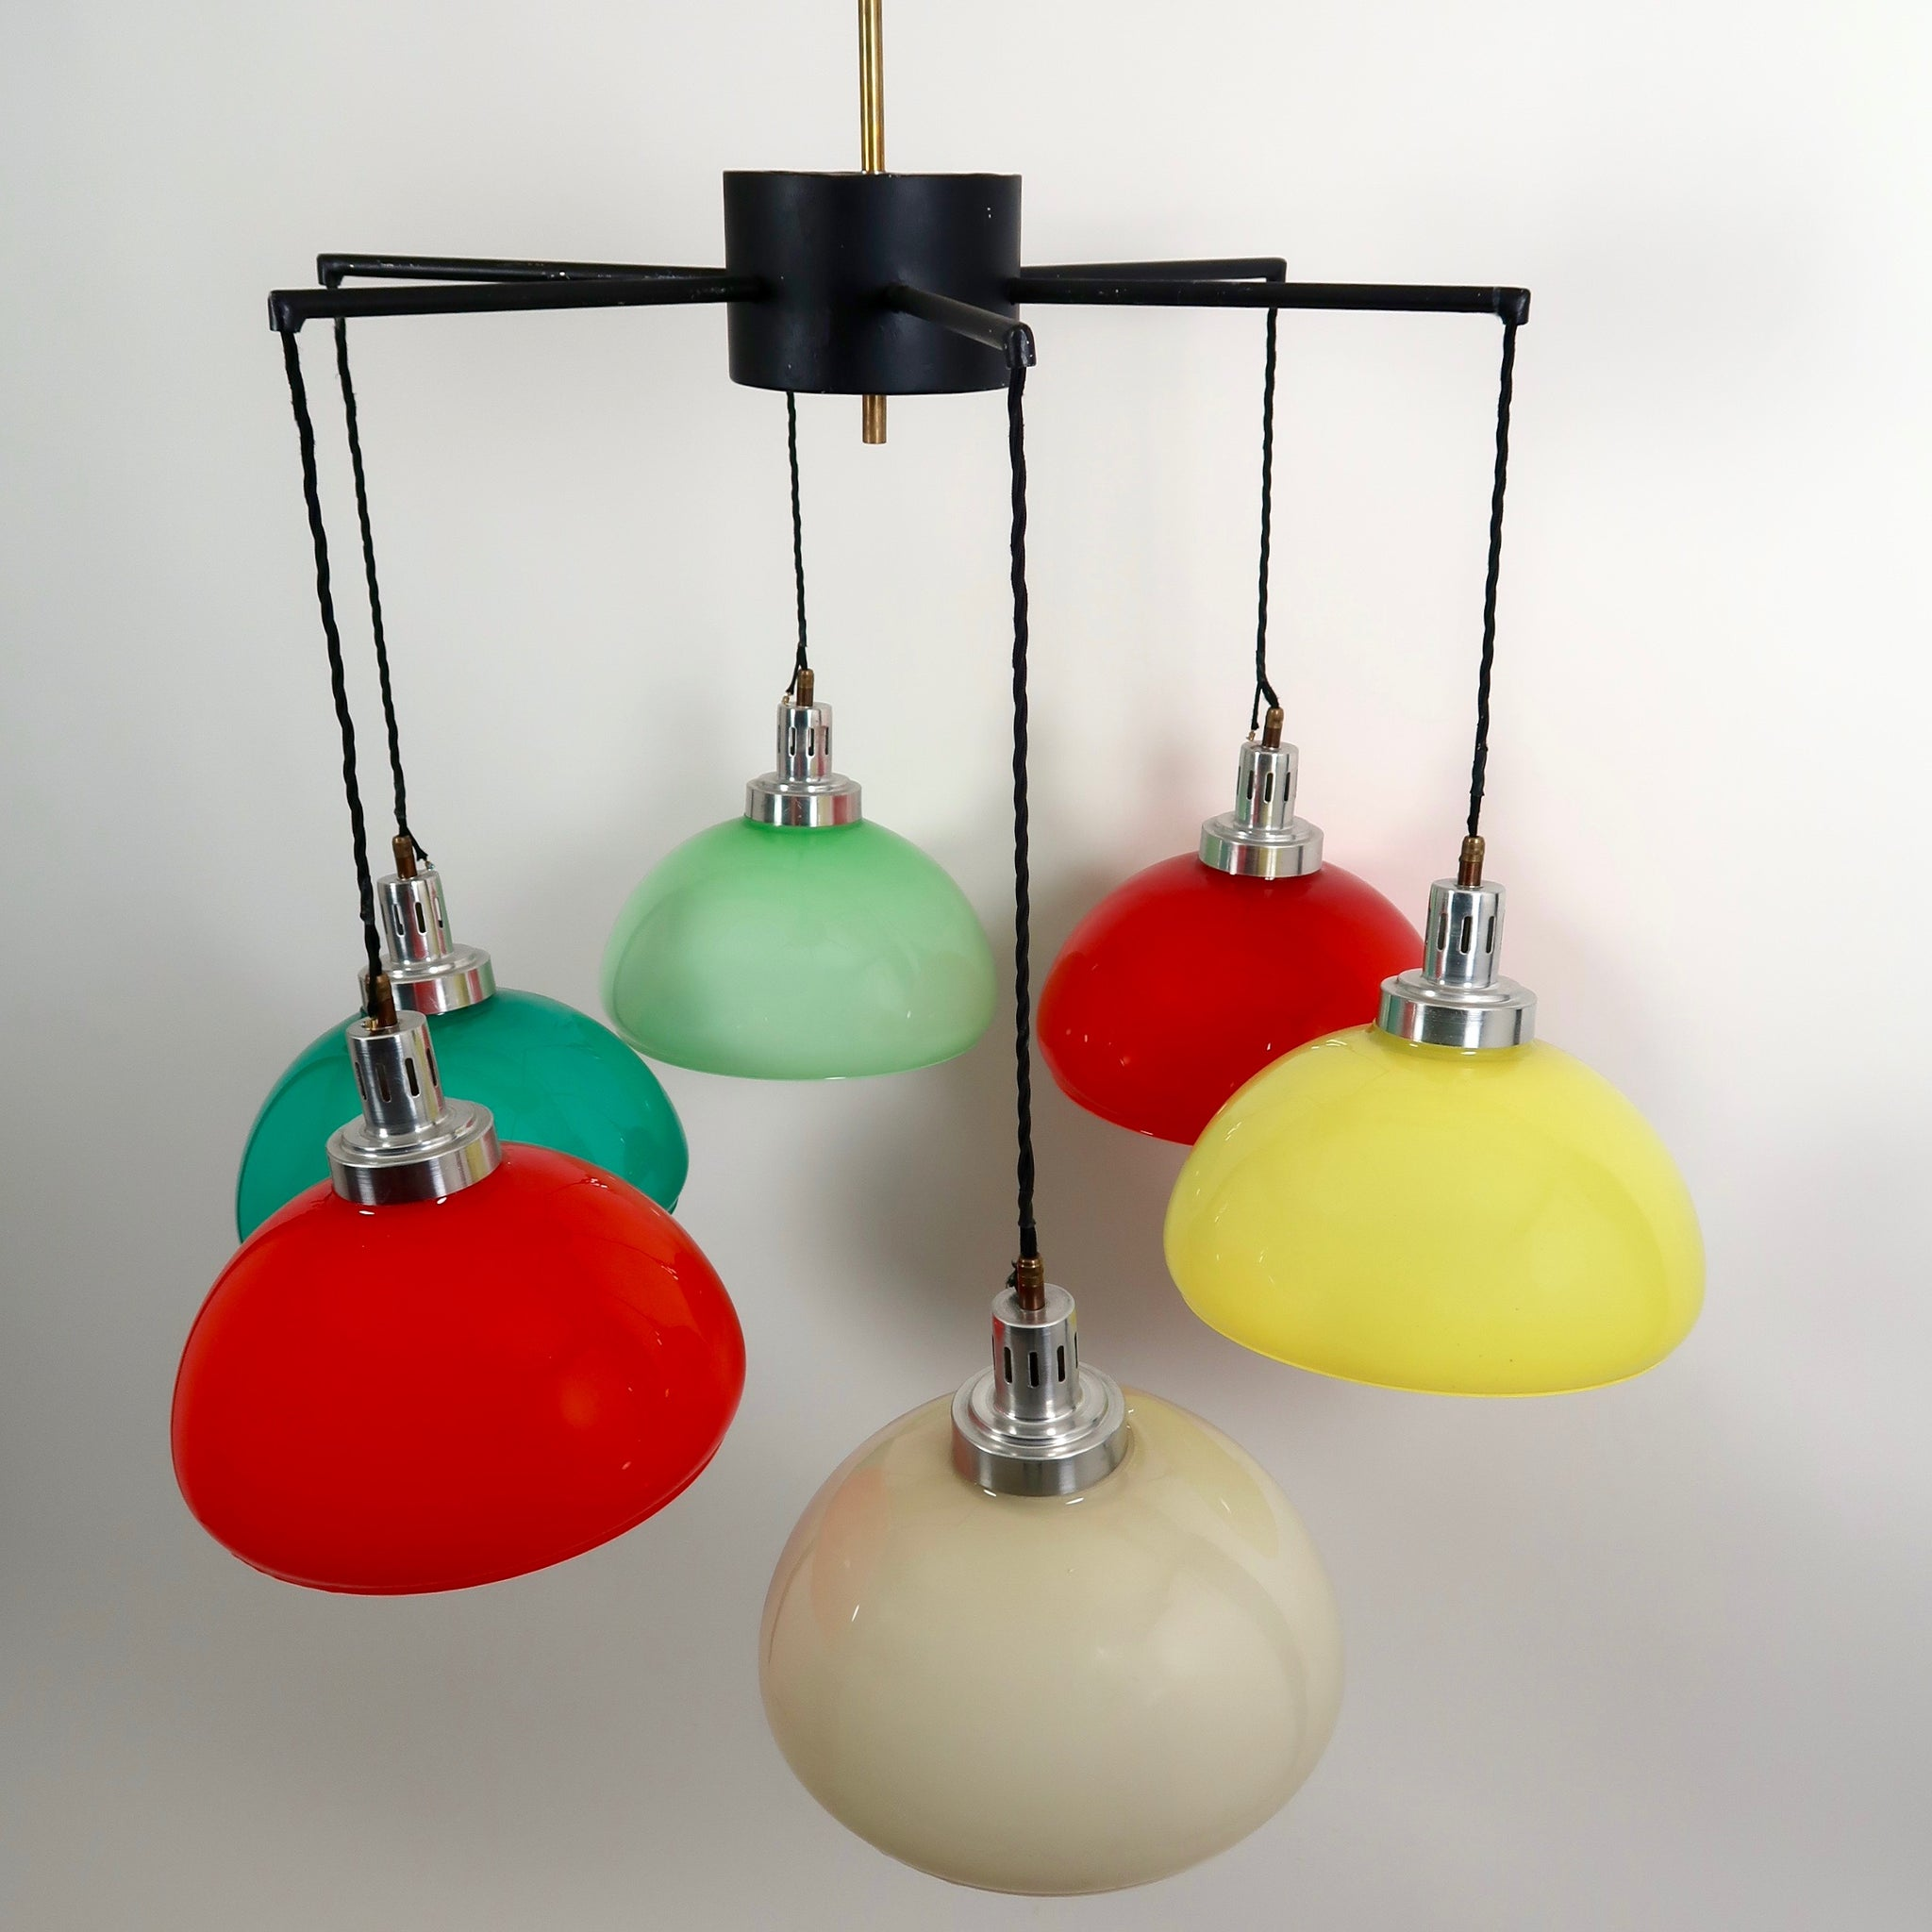 Spectacular Italian 1950's chandelier with 6 coloured glass shades .